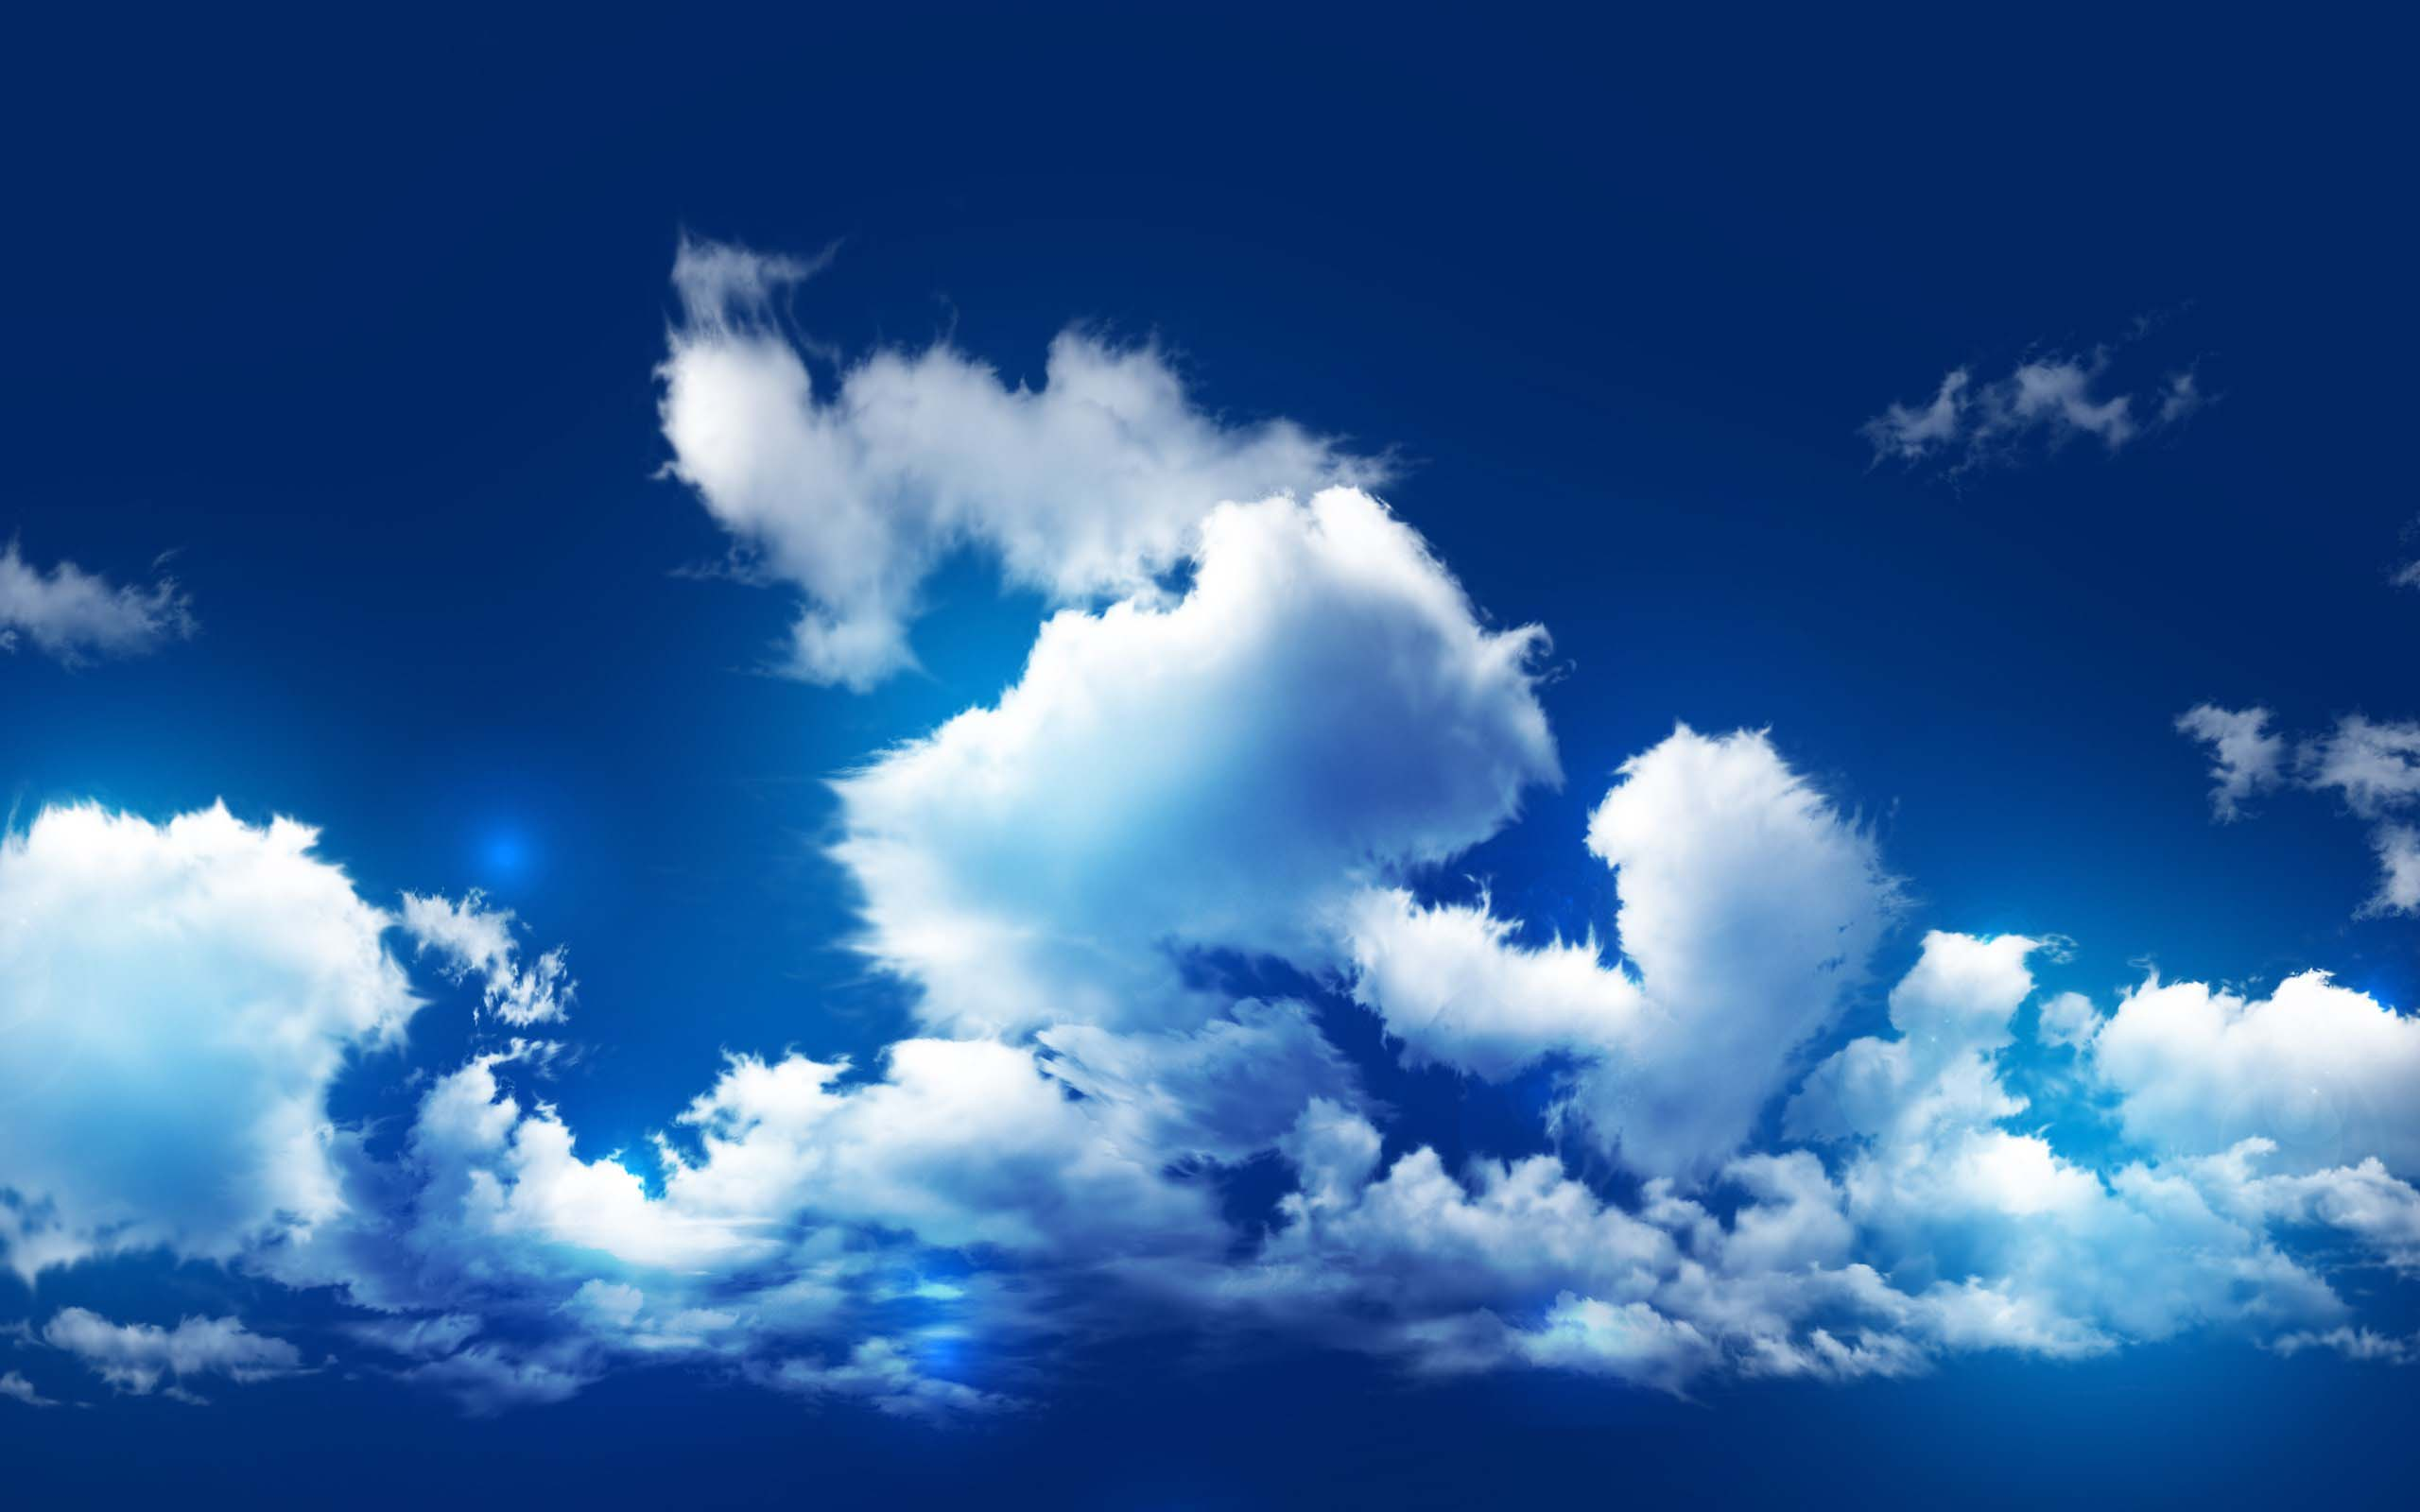 Nice cloud sky wallpaper